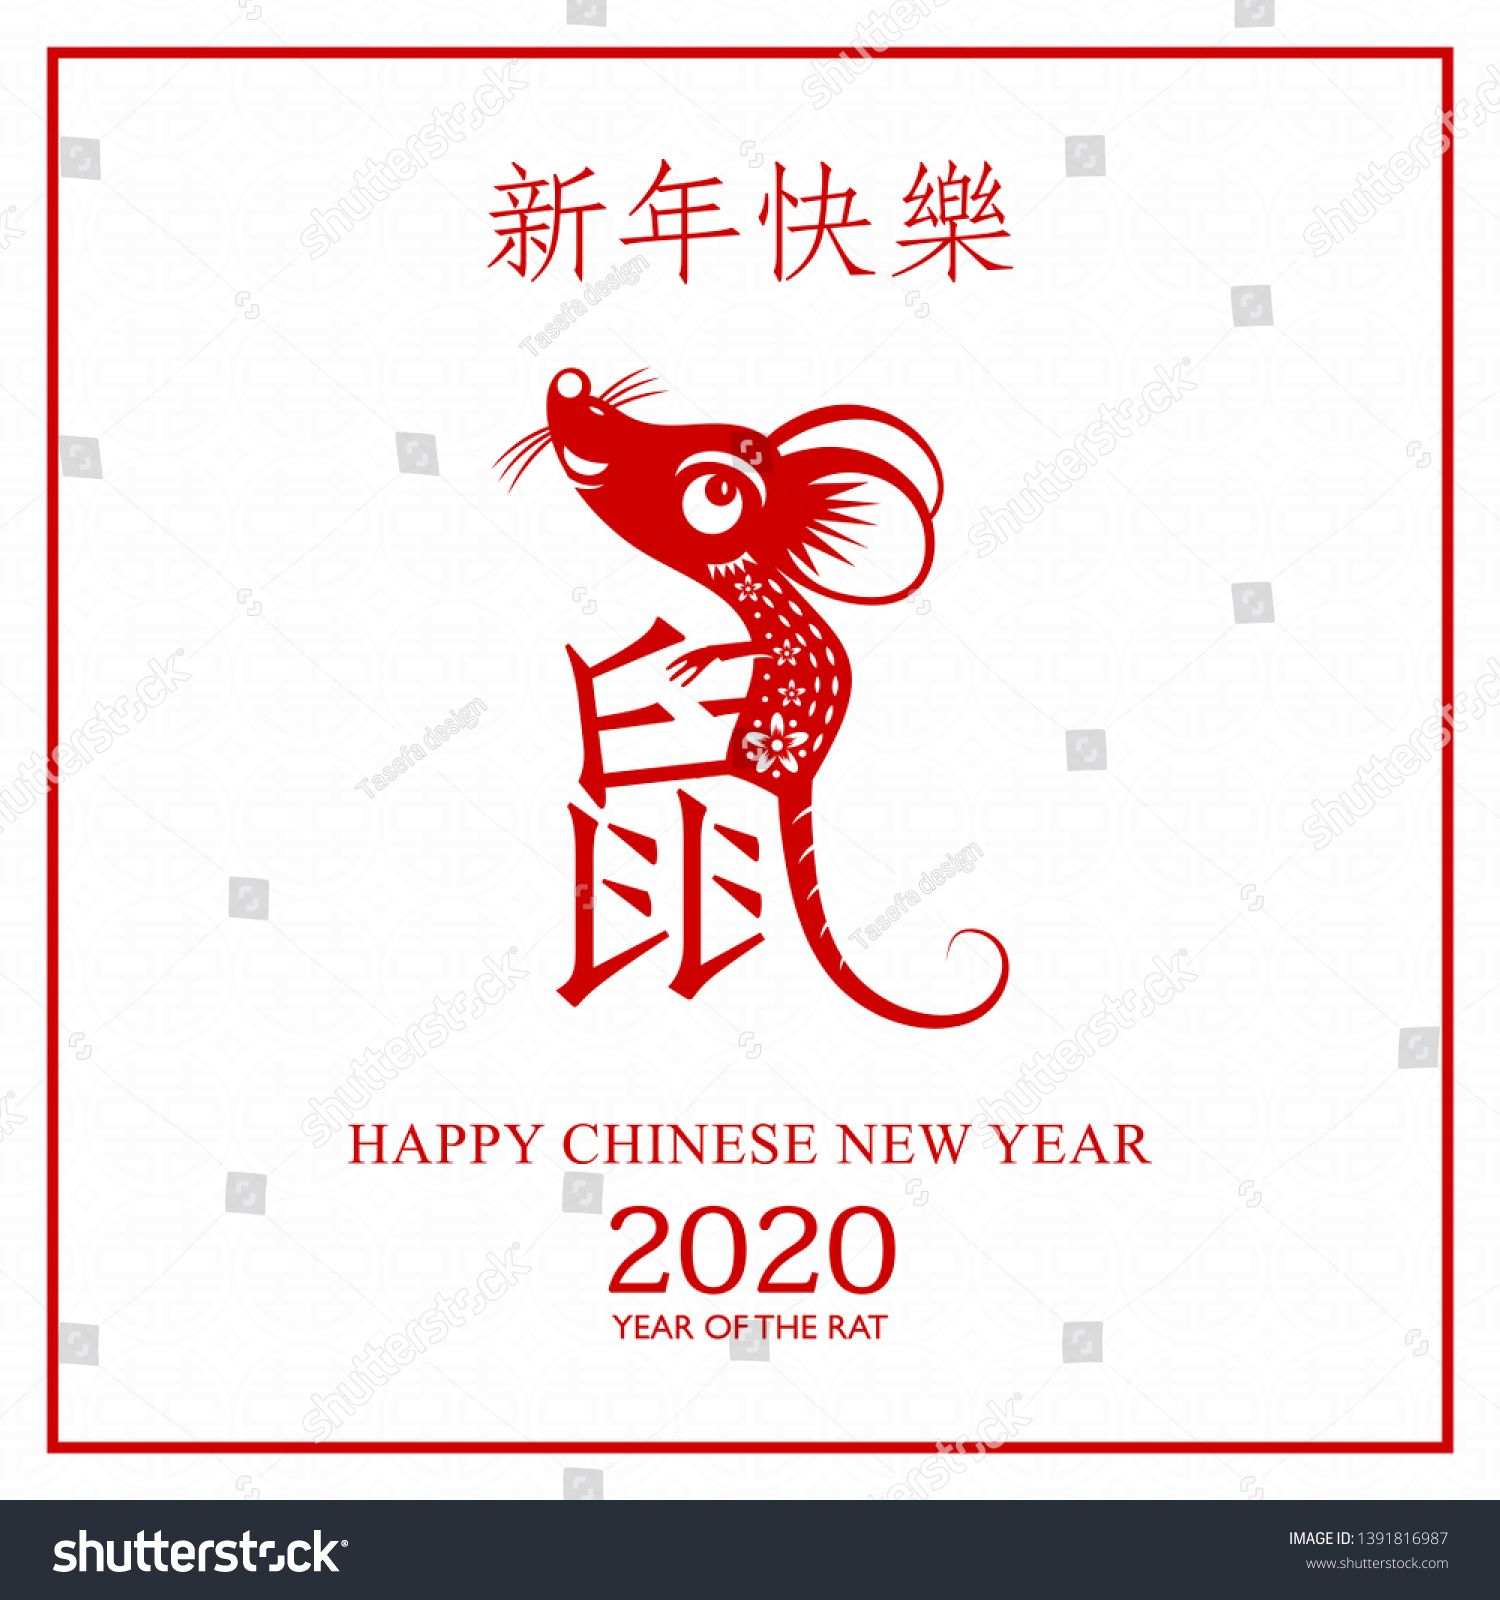 2020 Chinese New Year.Pin On Chinese New Year